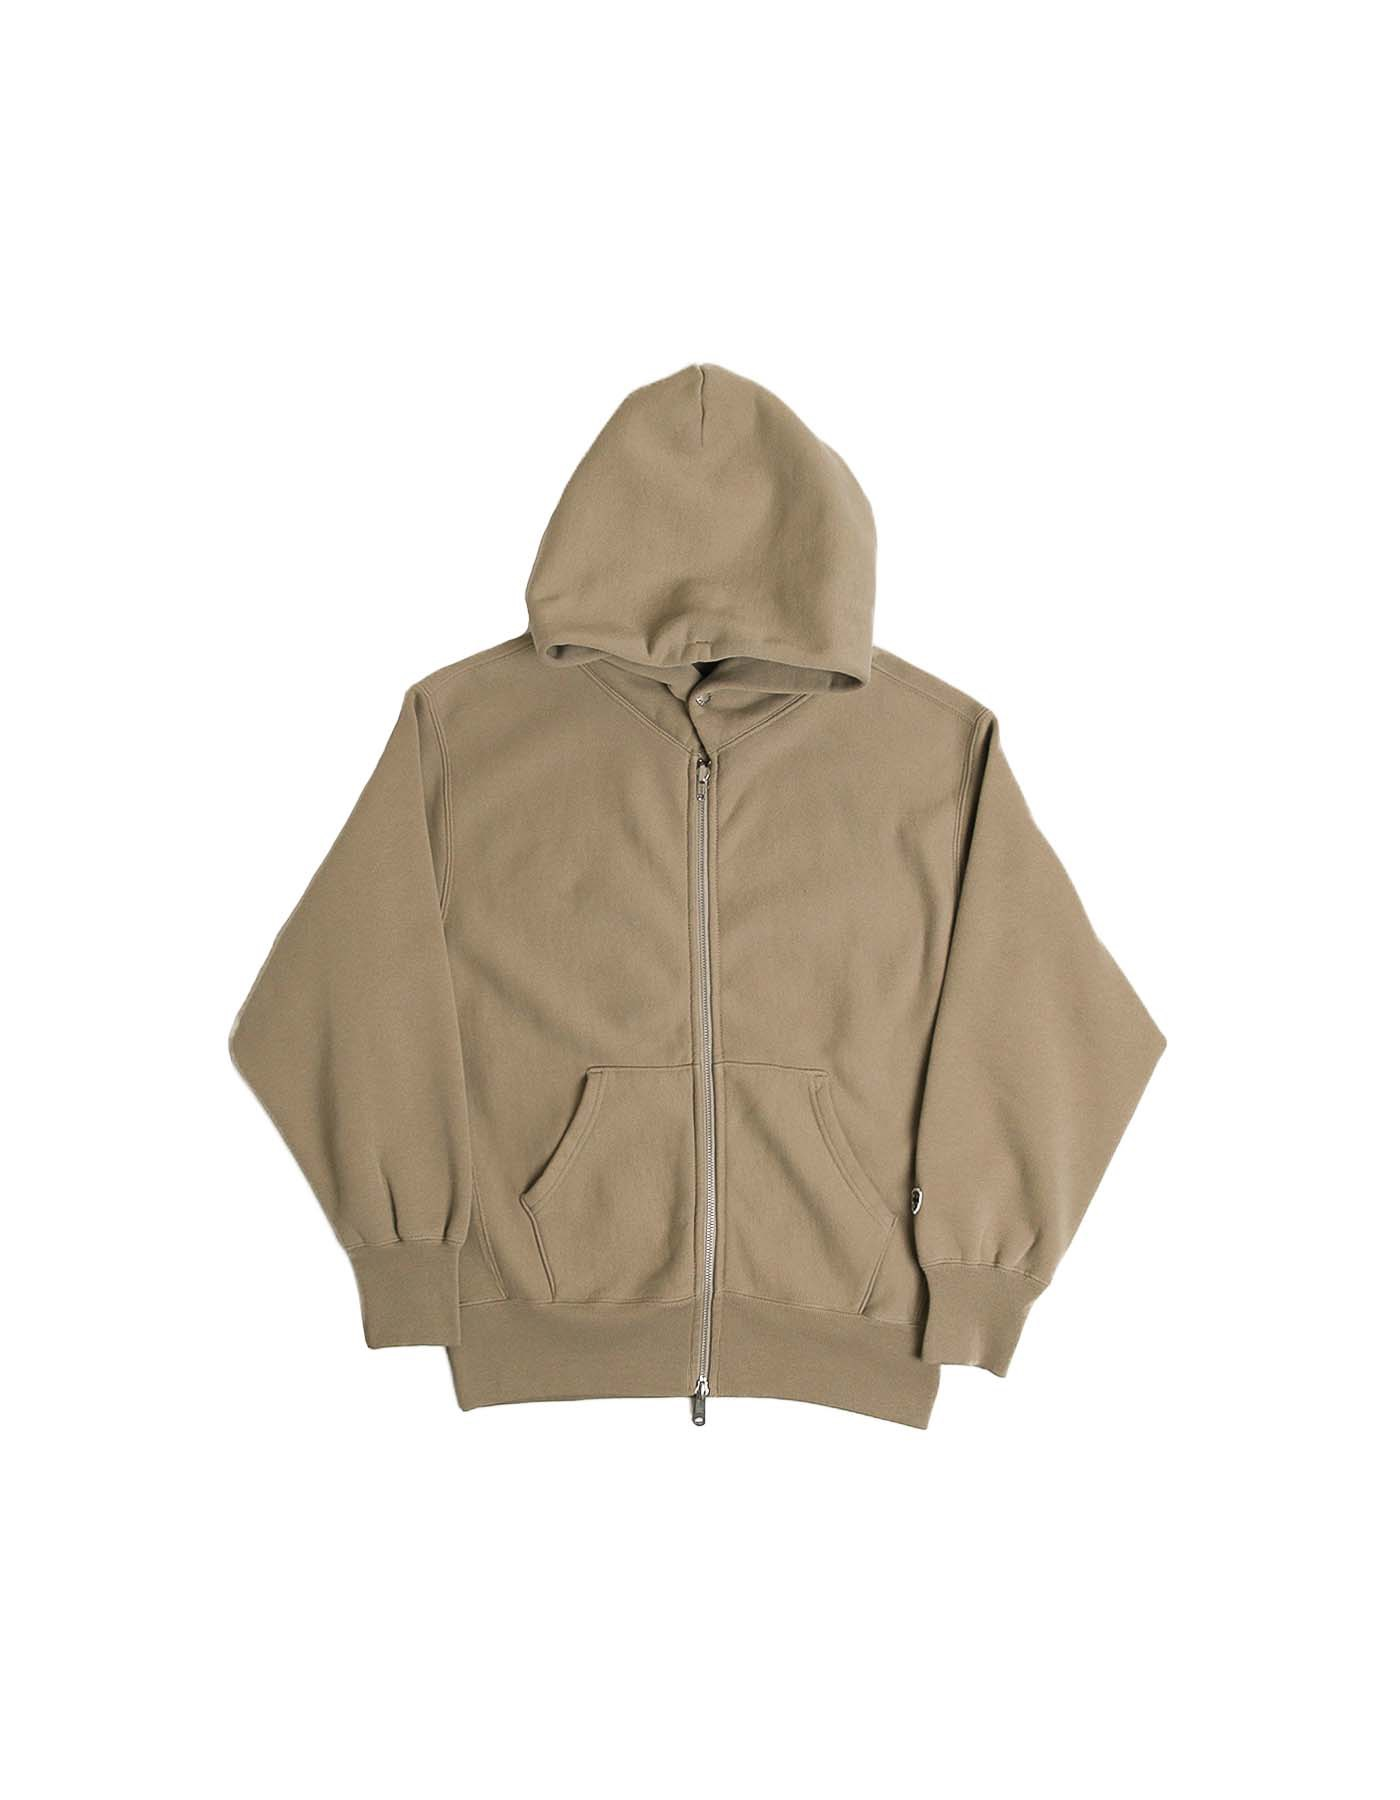 334 REVERSE FLEECE ZIP-UP HOODIE / GREGE